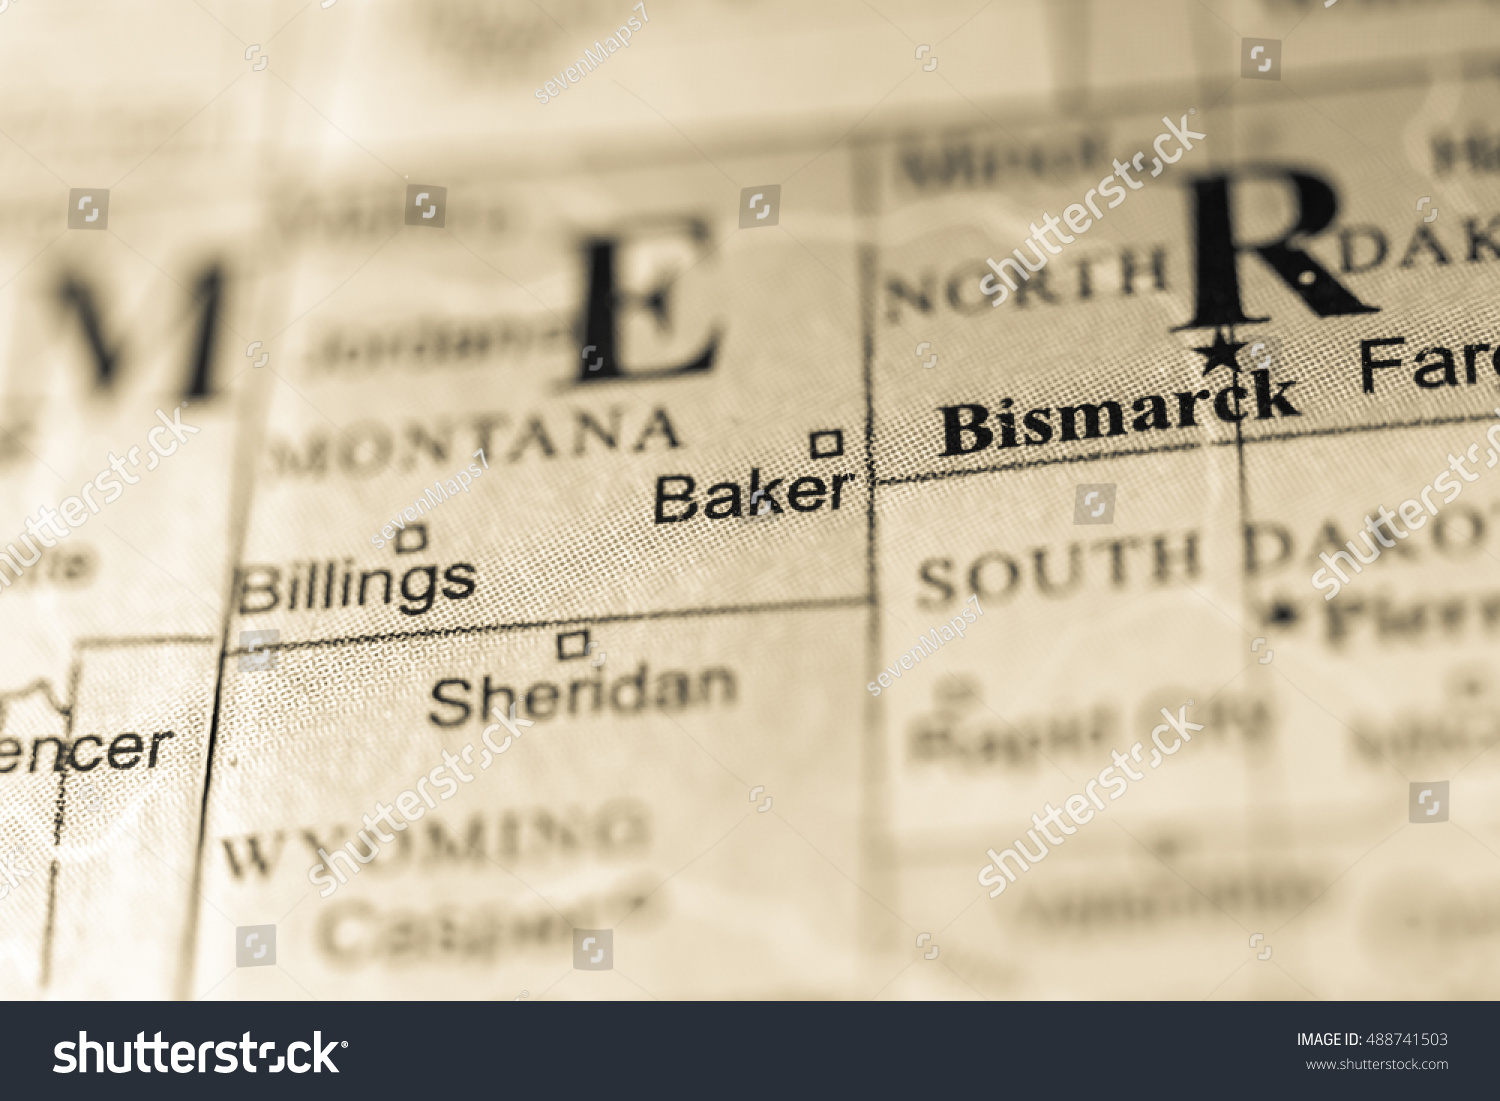 Royalty Free Closeup Of Baker Montana On A 488741503 Stock Photo